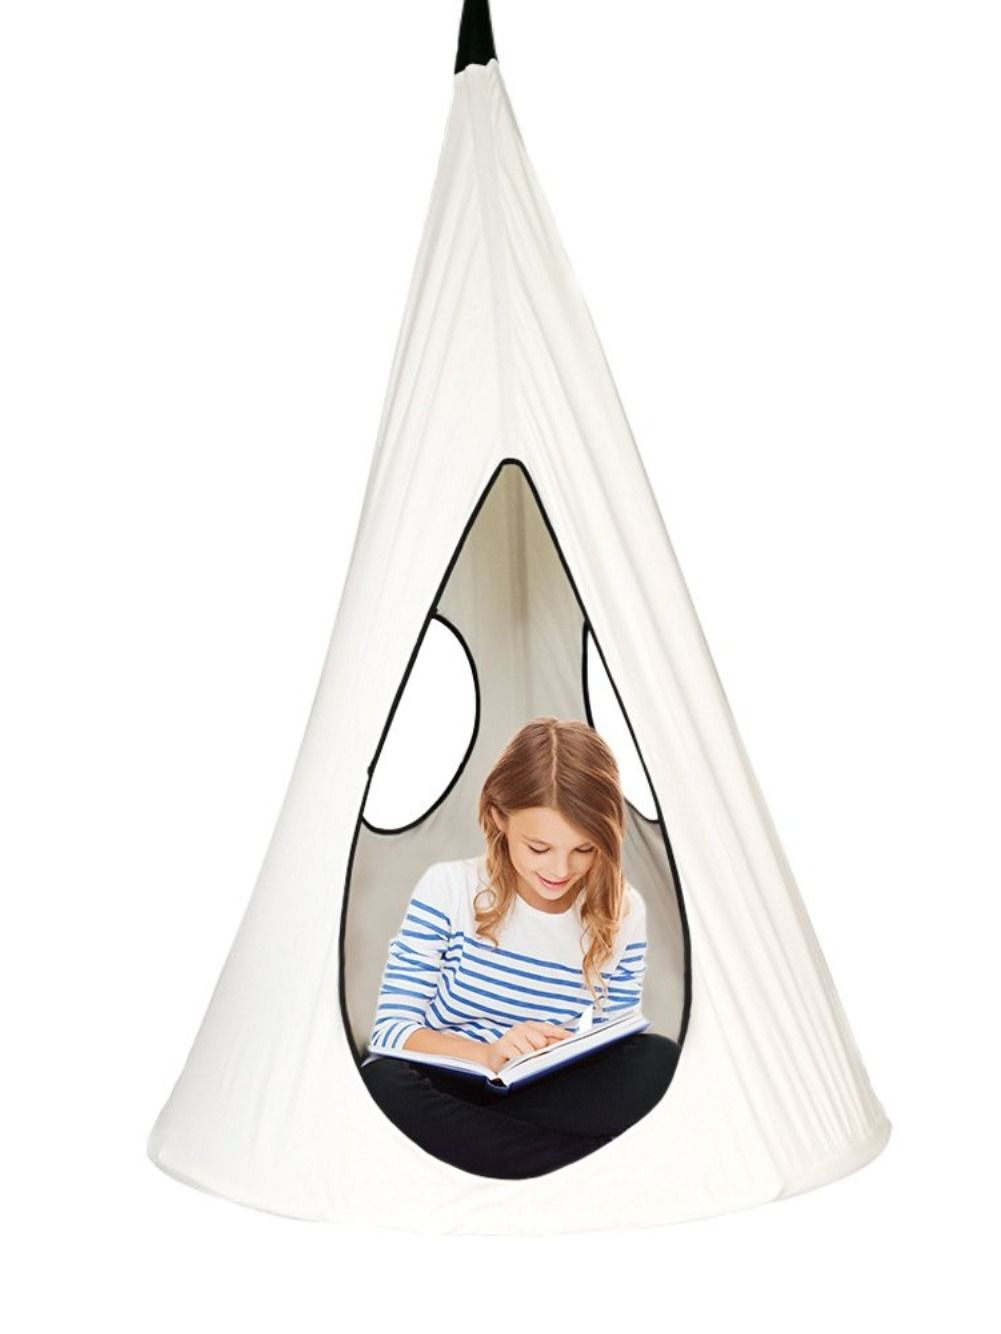 Hanging this Nest Hammock Swing Chair in your backyard